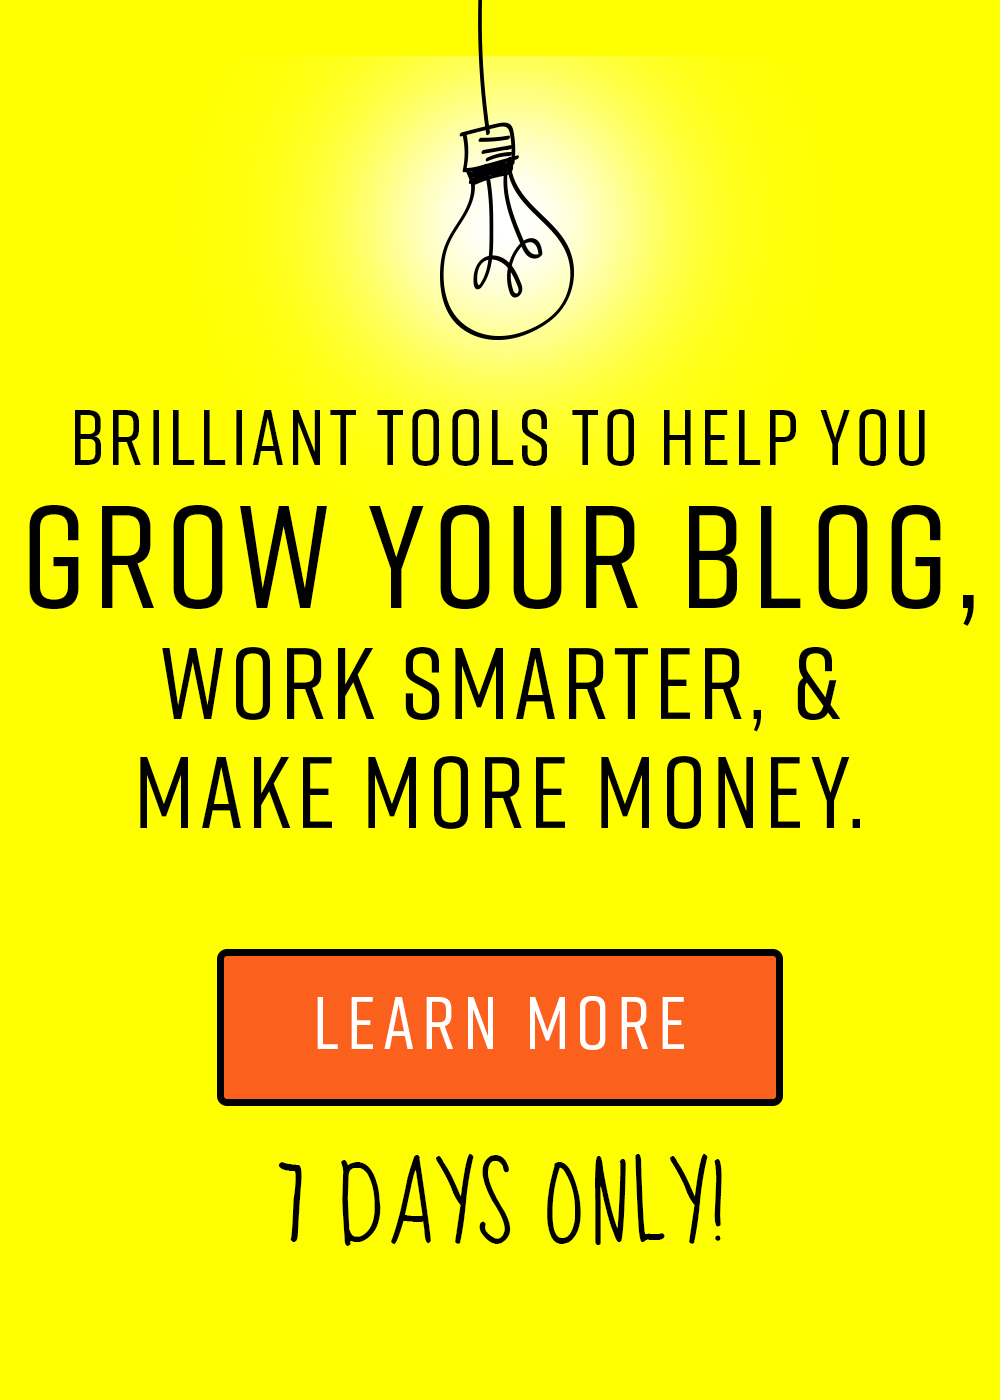 Learning how to blog and make money! Great advice on learning how to make money online!